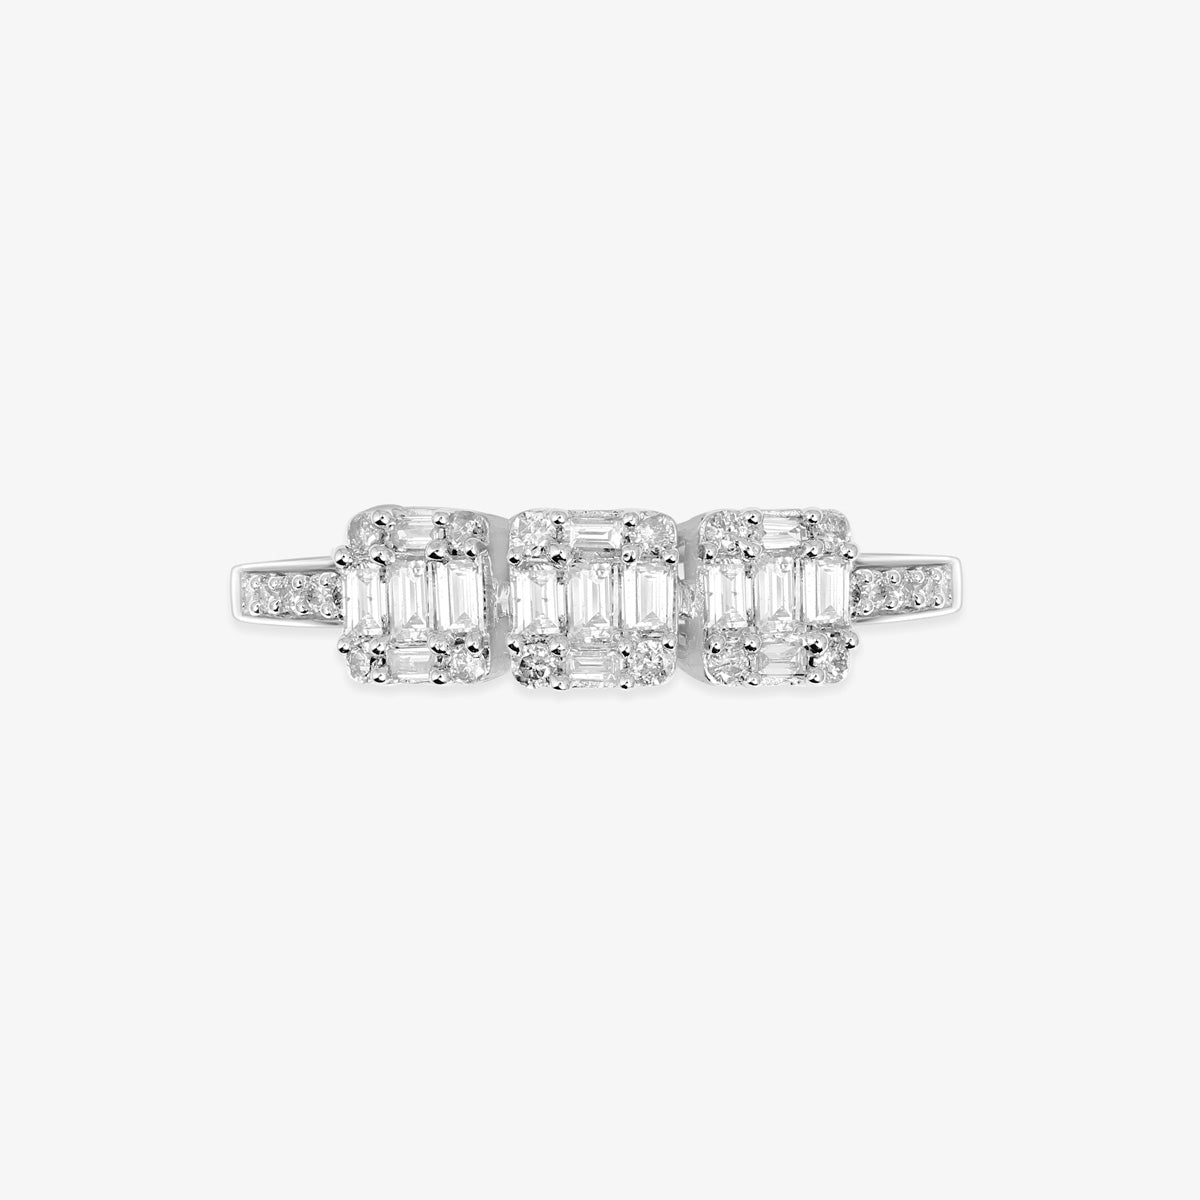 Multi-Baguette And Round Diamond Engagement Ring - estellacollection